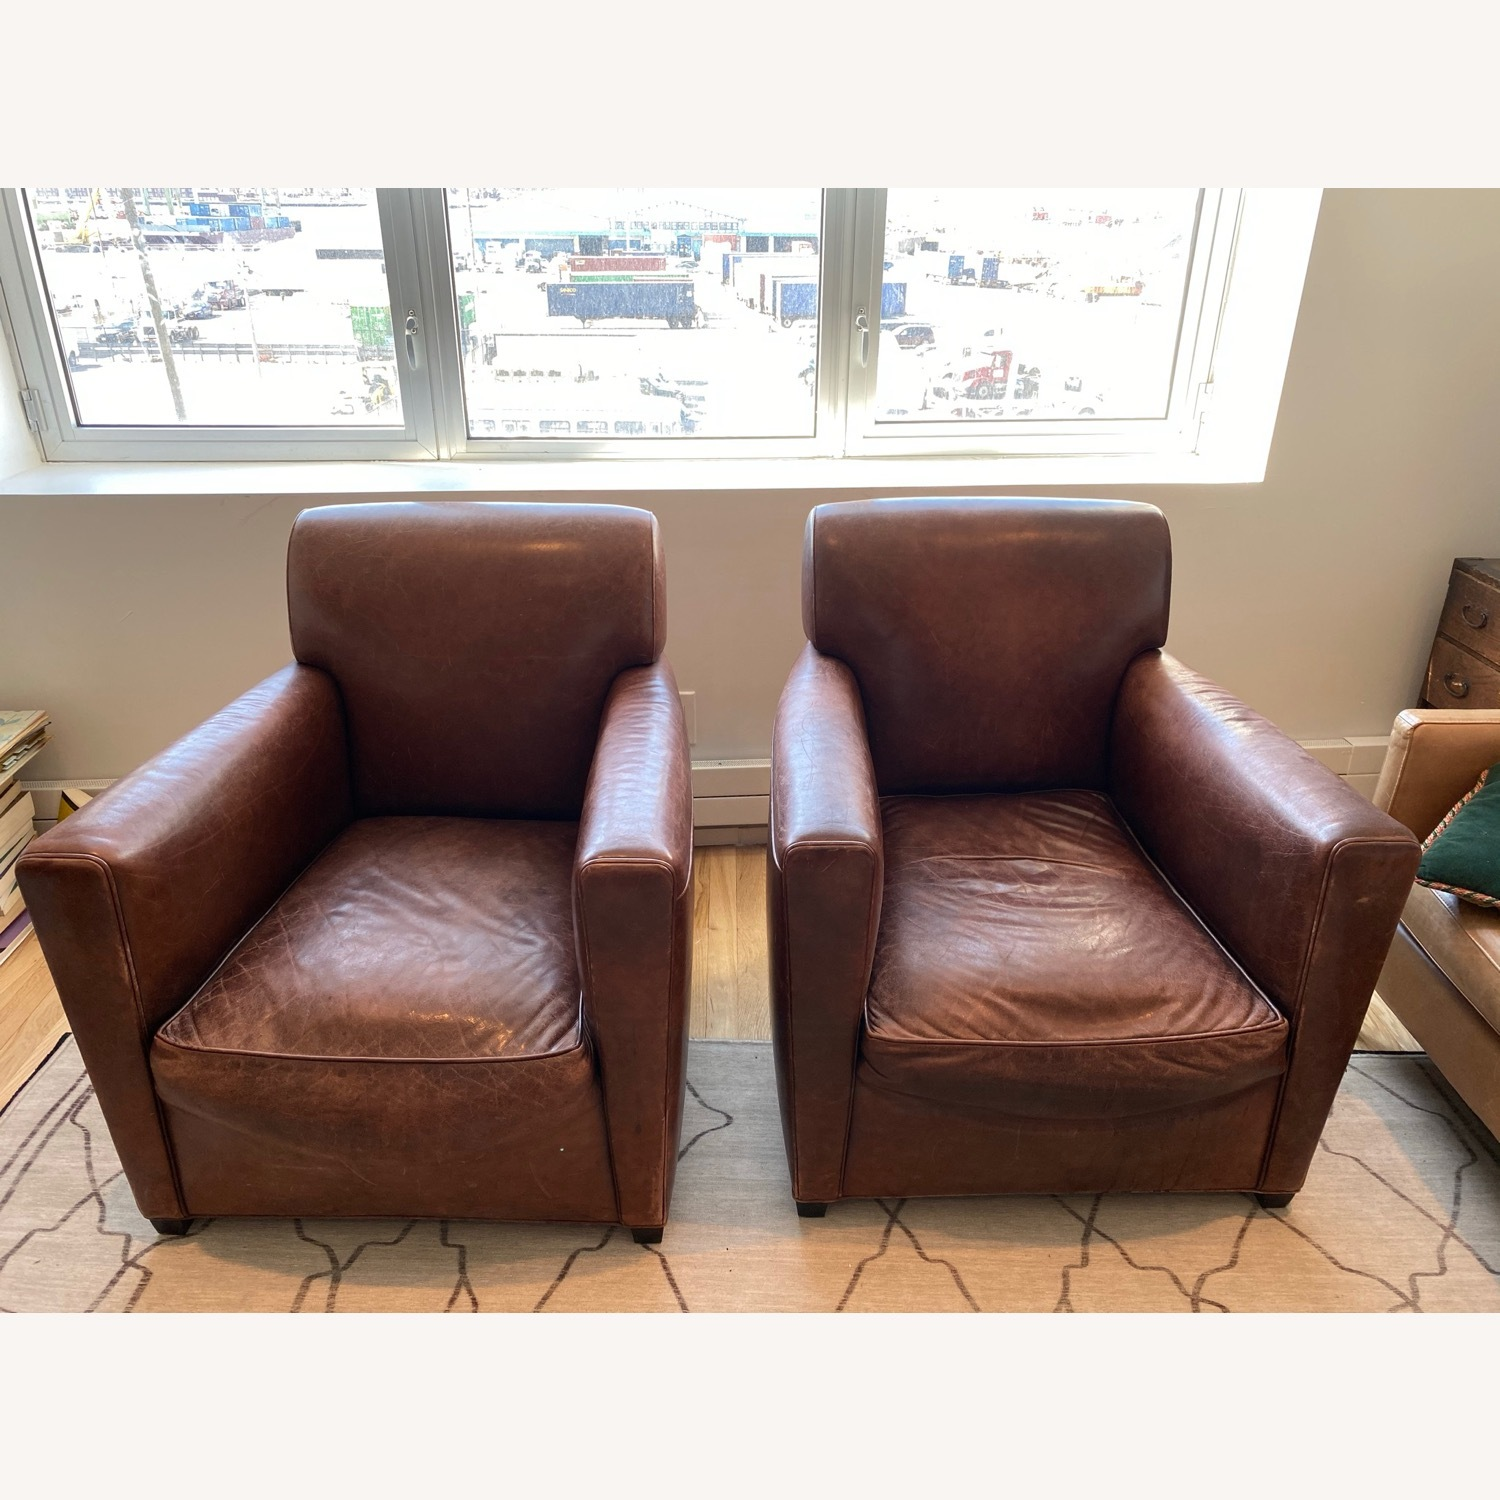 Baker + Coach Leather Club Chairs - Set of 2 - image-6